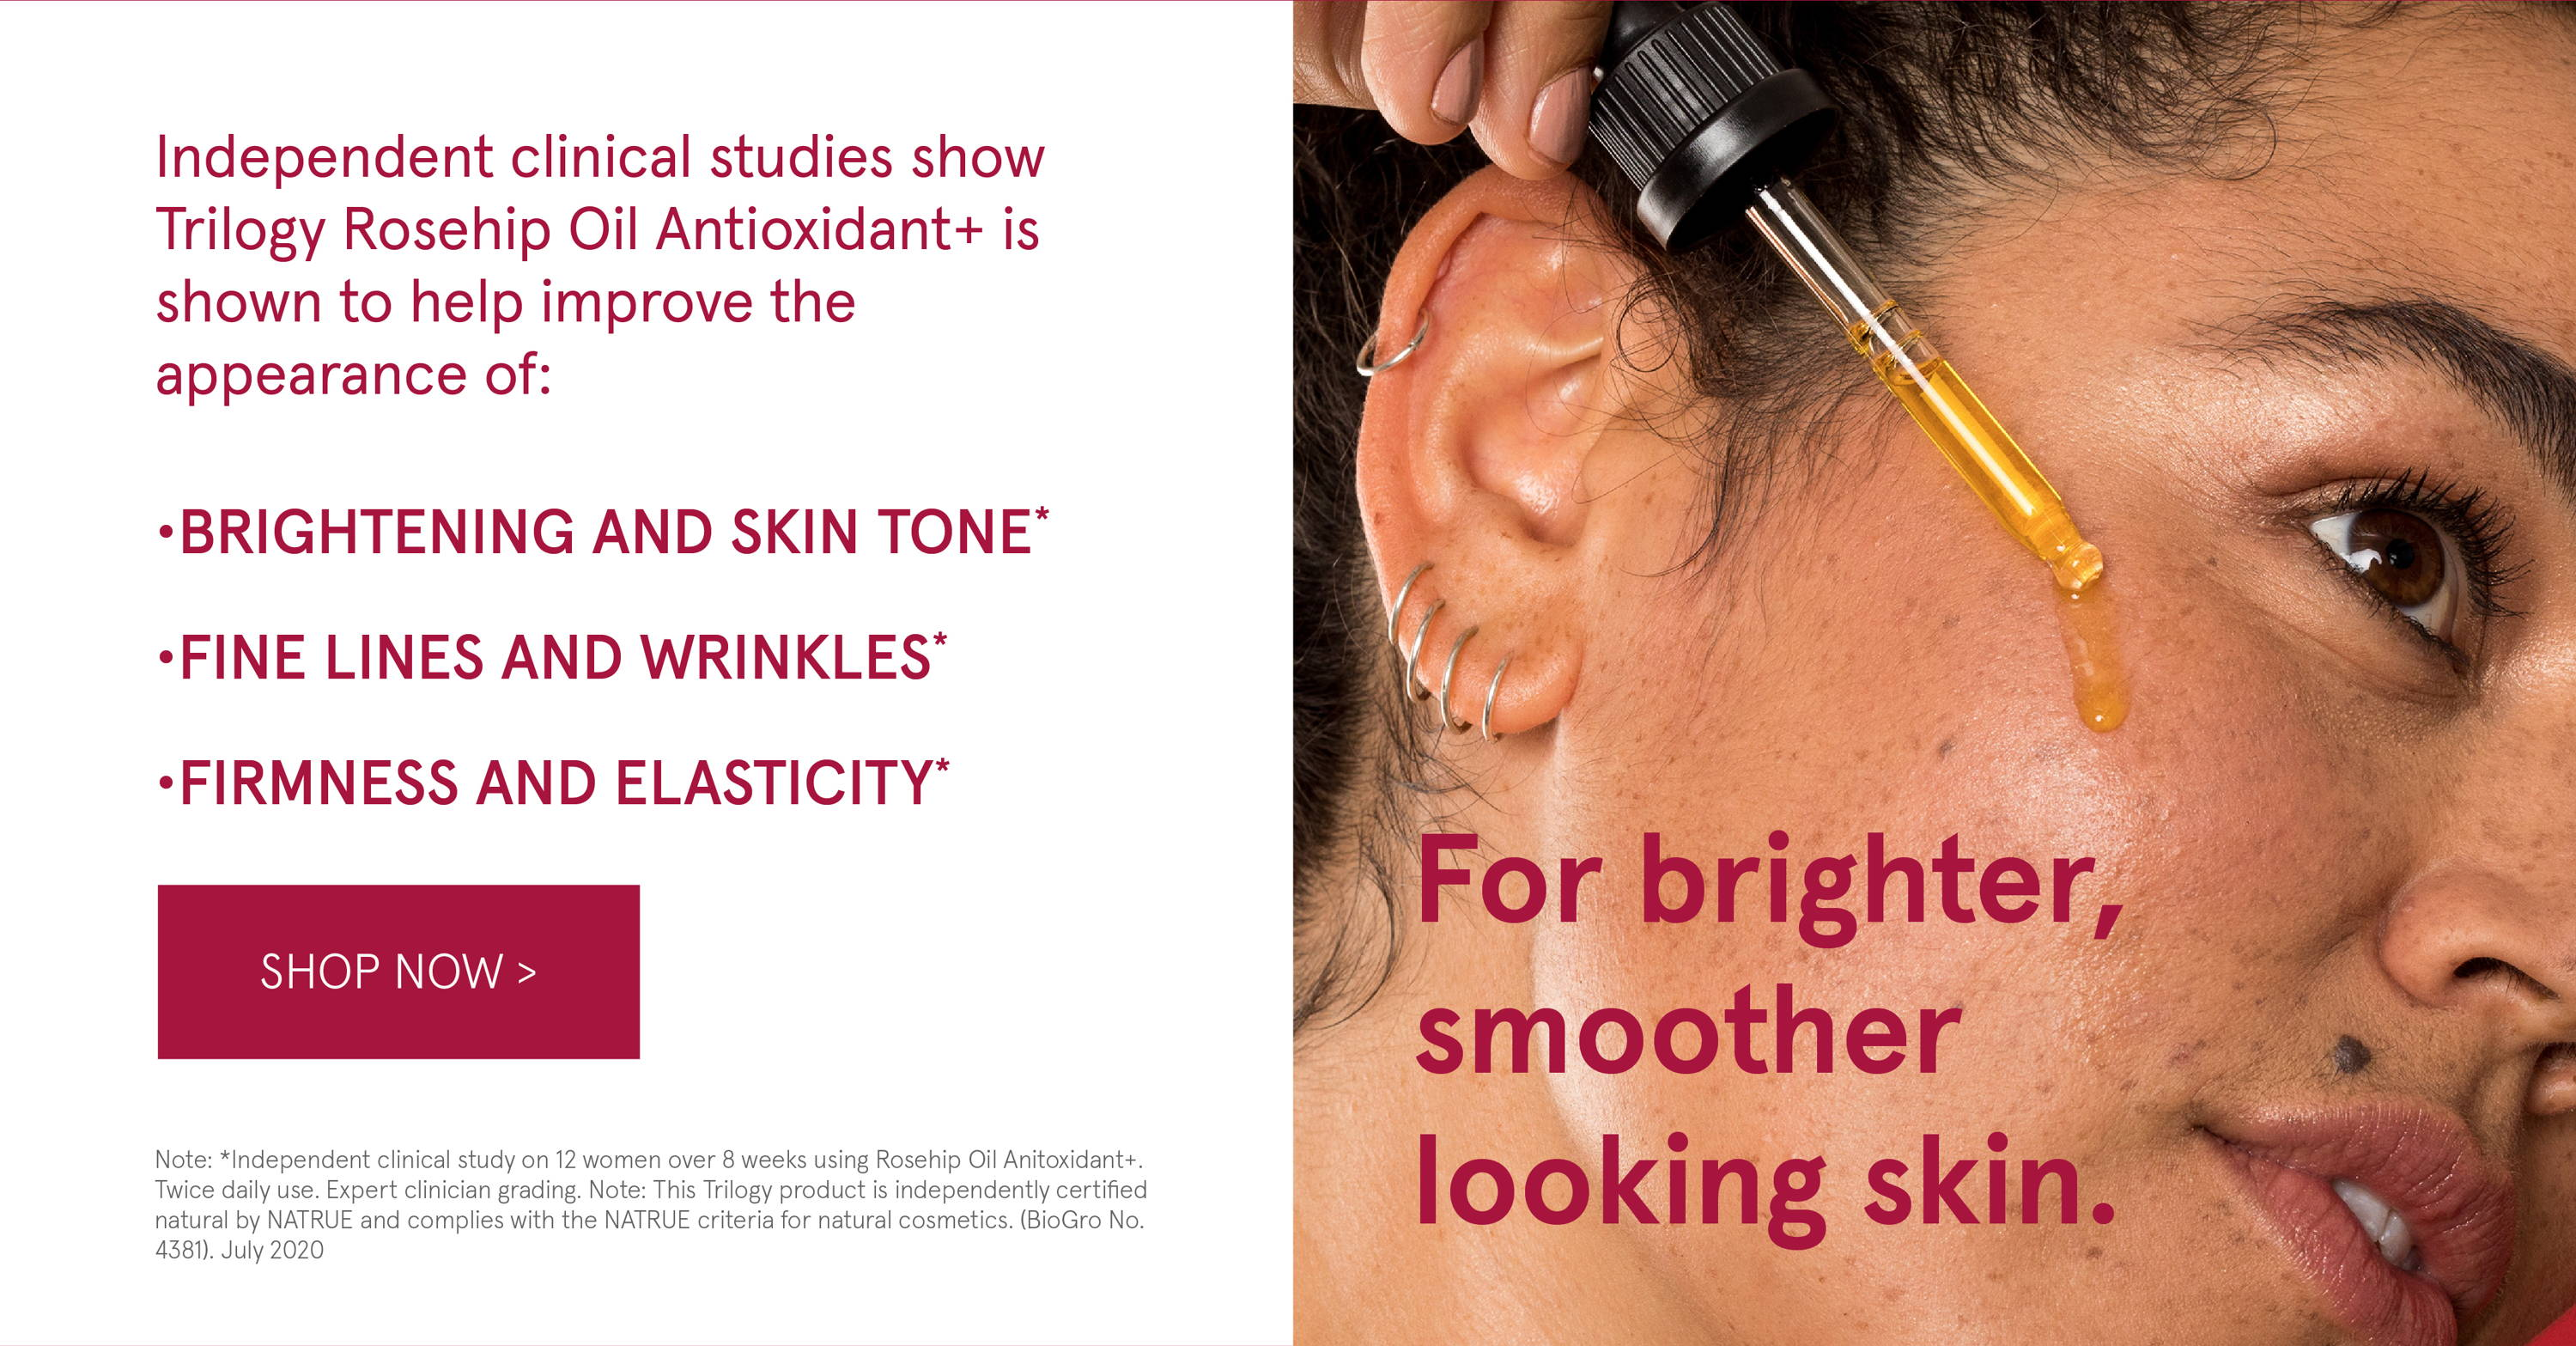 Brighten, firm and tone with Rosehip Antioxidant +